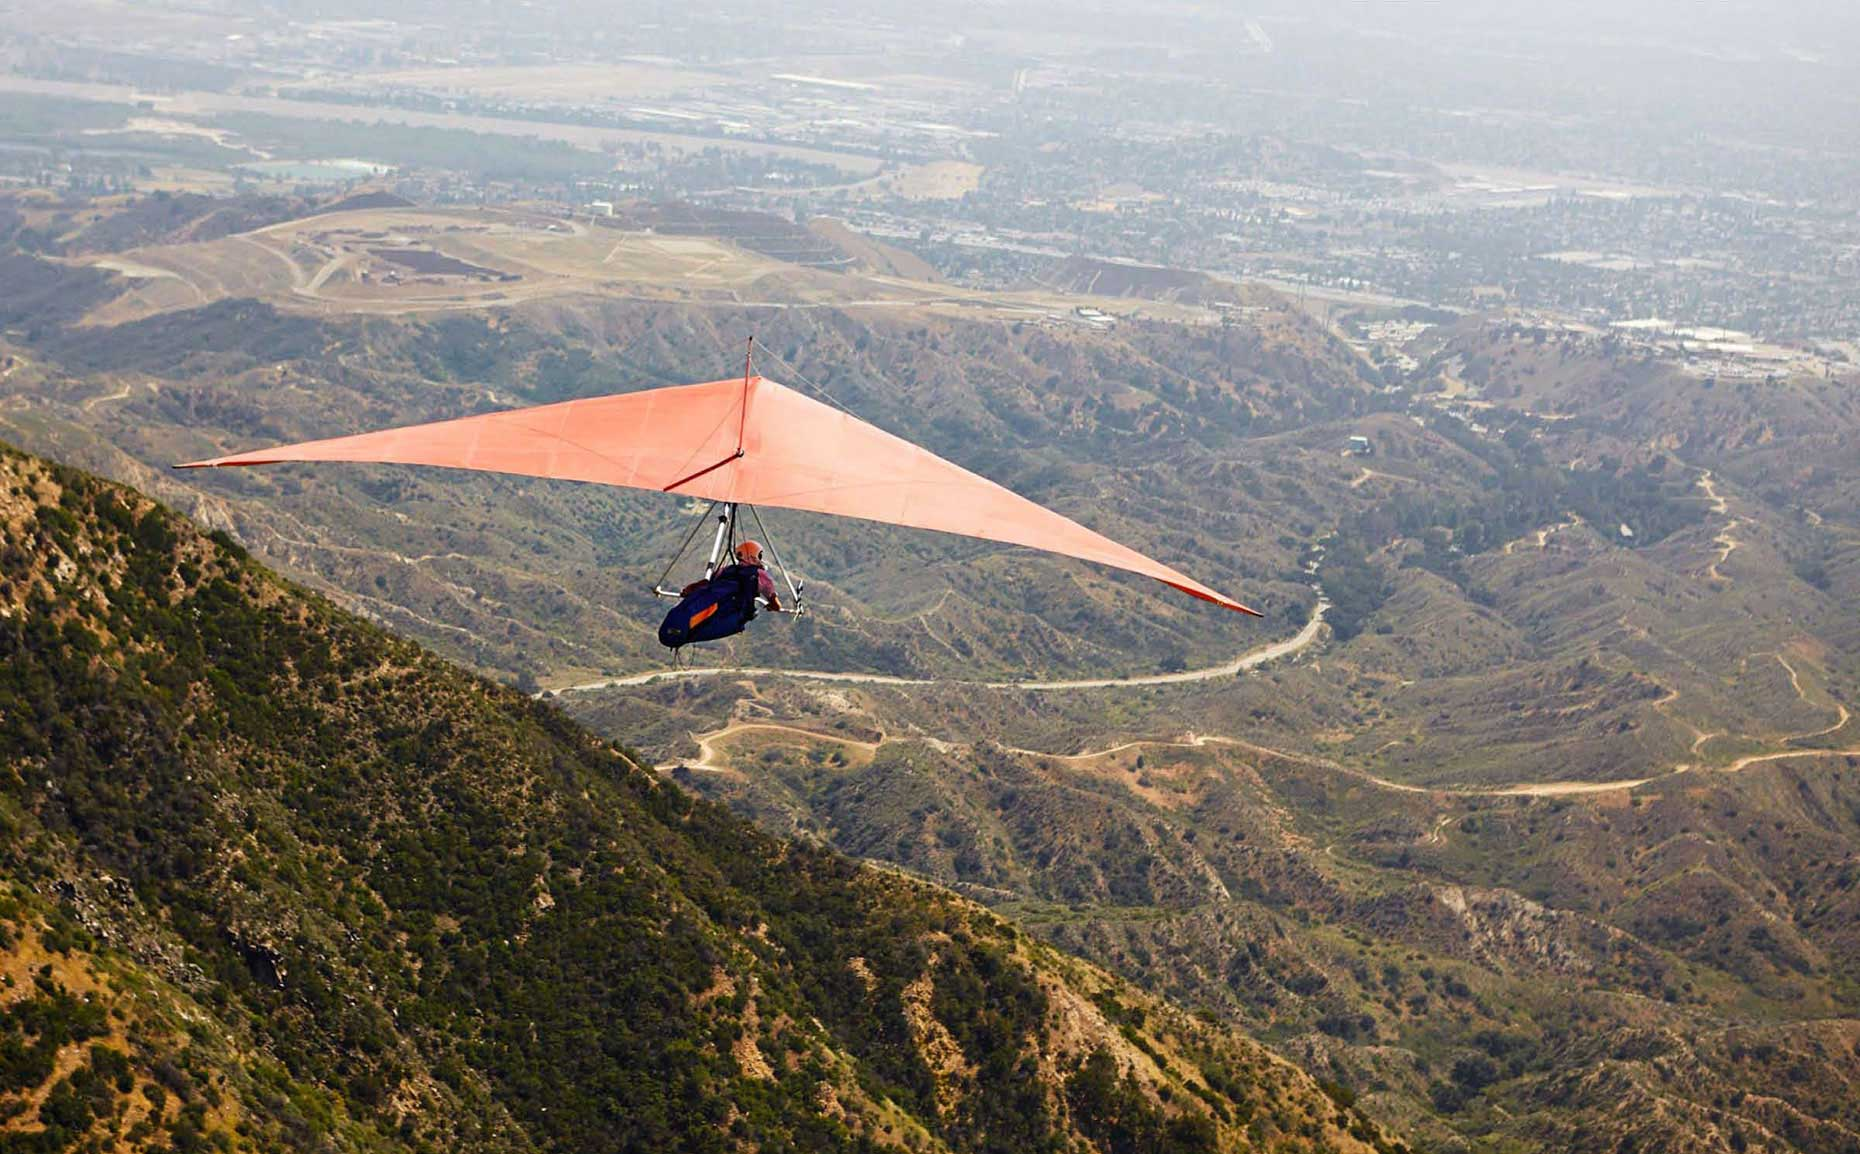 Photography_Lifestyle_Hang Gliding in Mountains-Tony Garcia